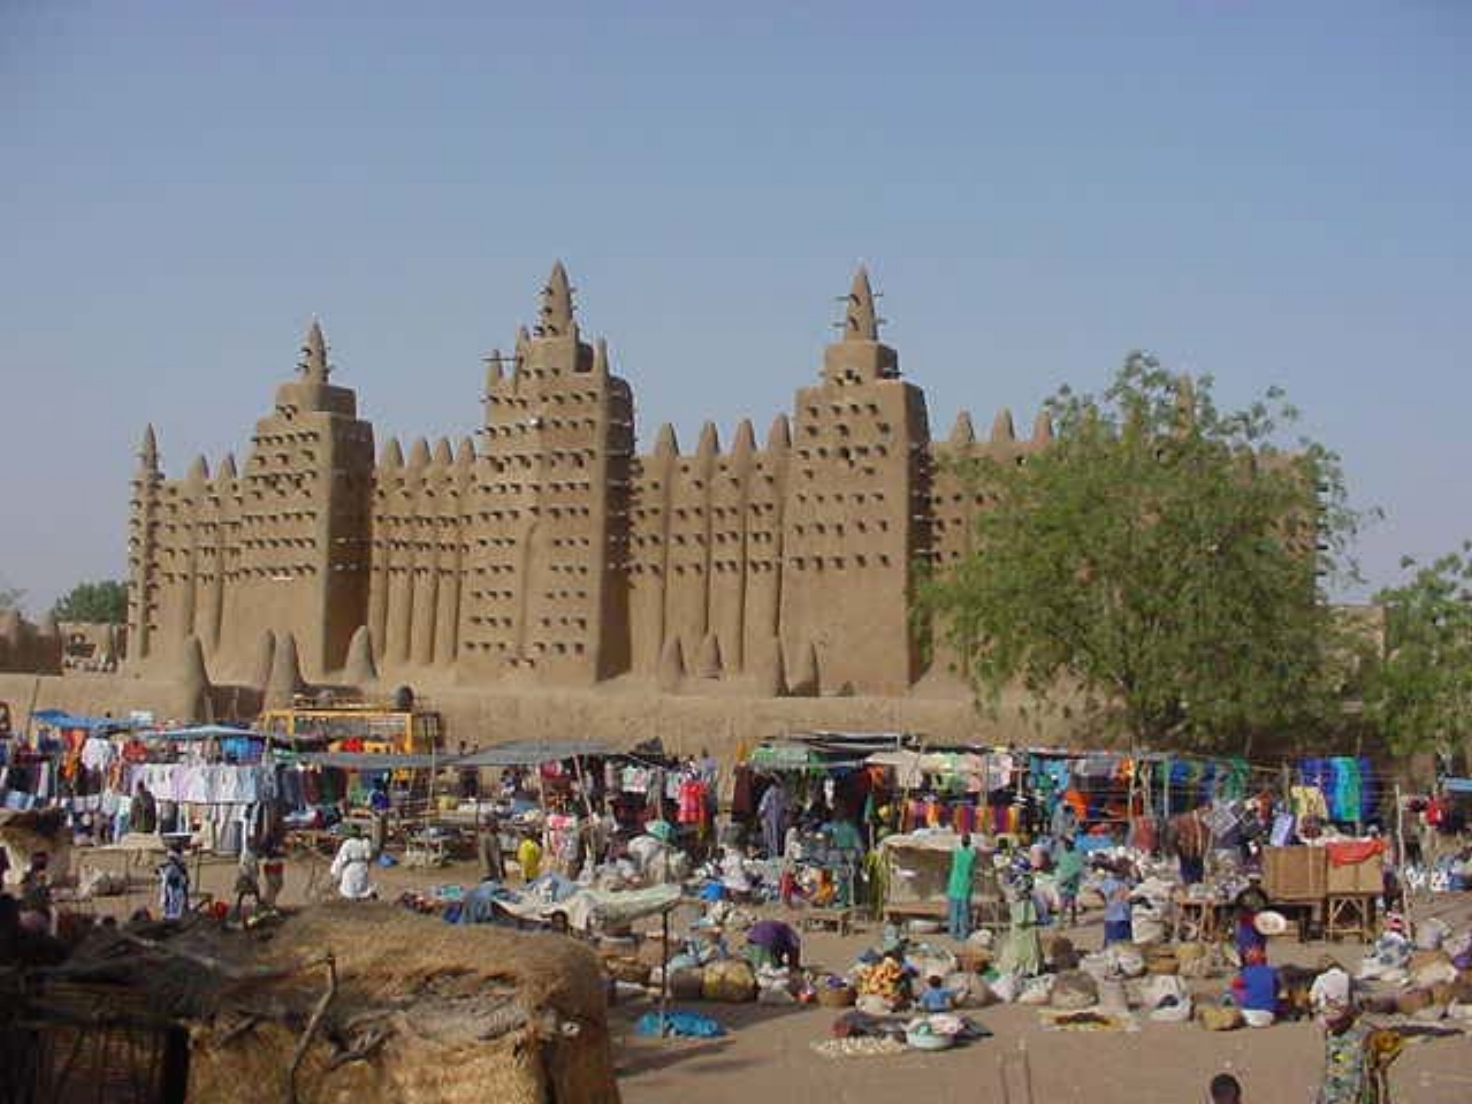 The Grand Mosque of Djenne